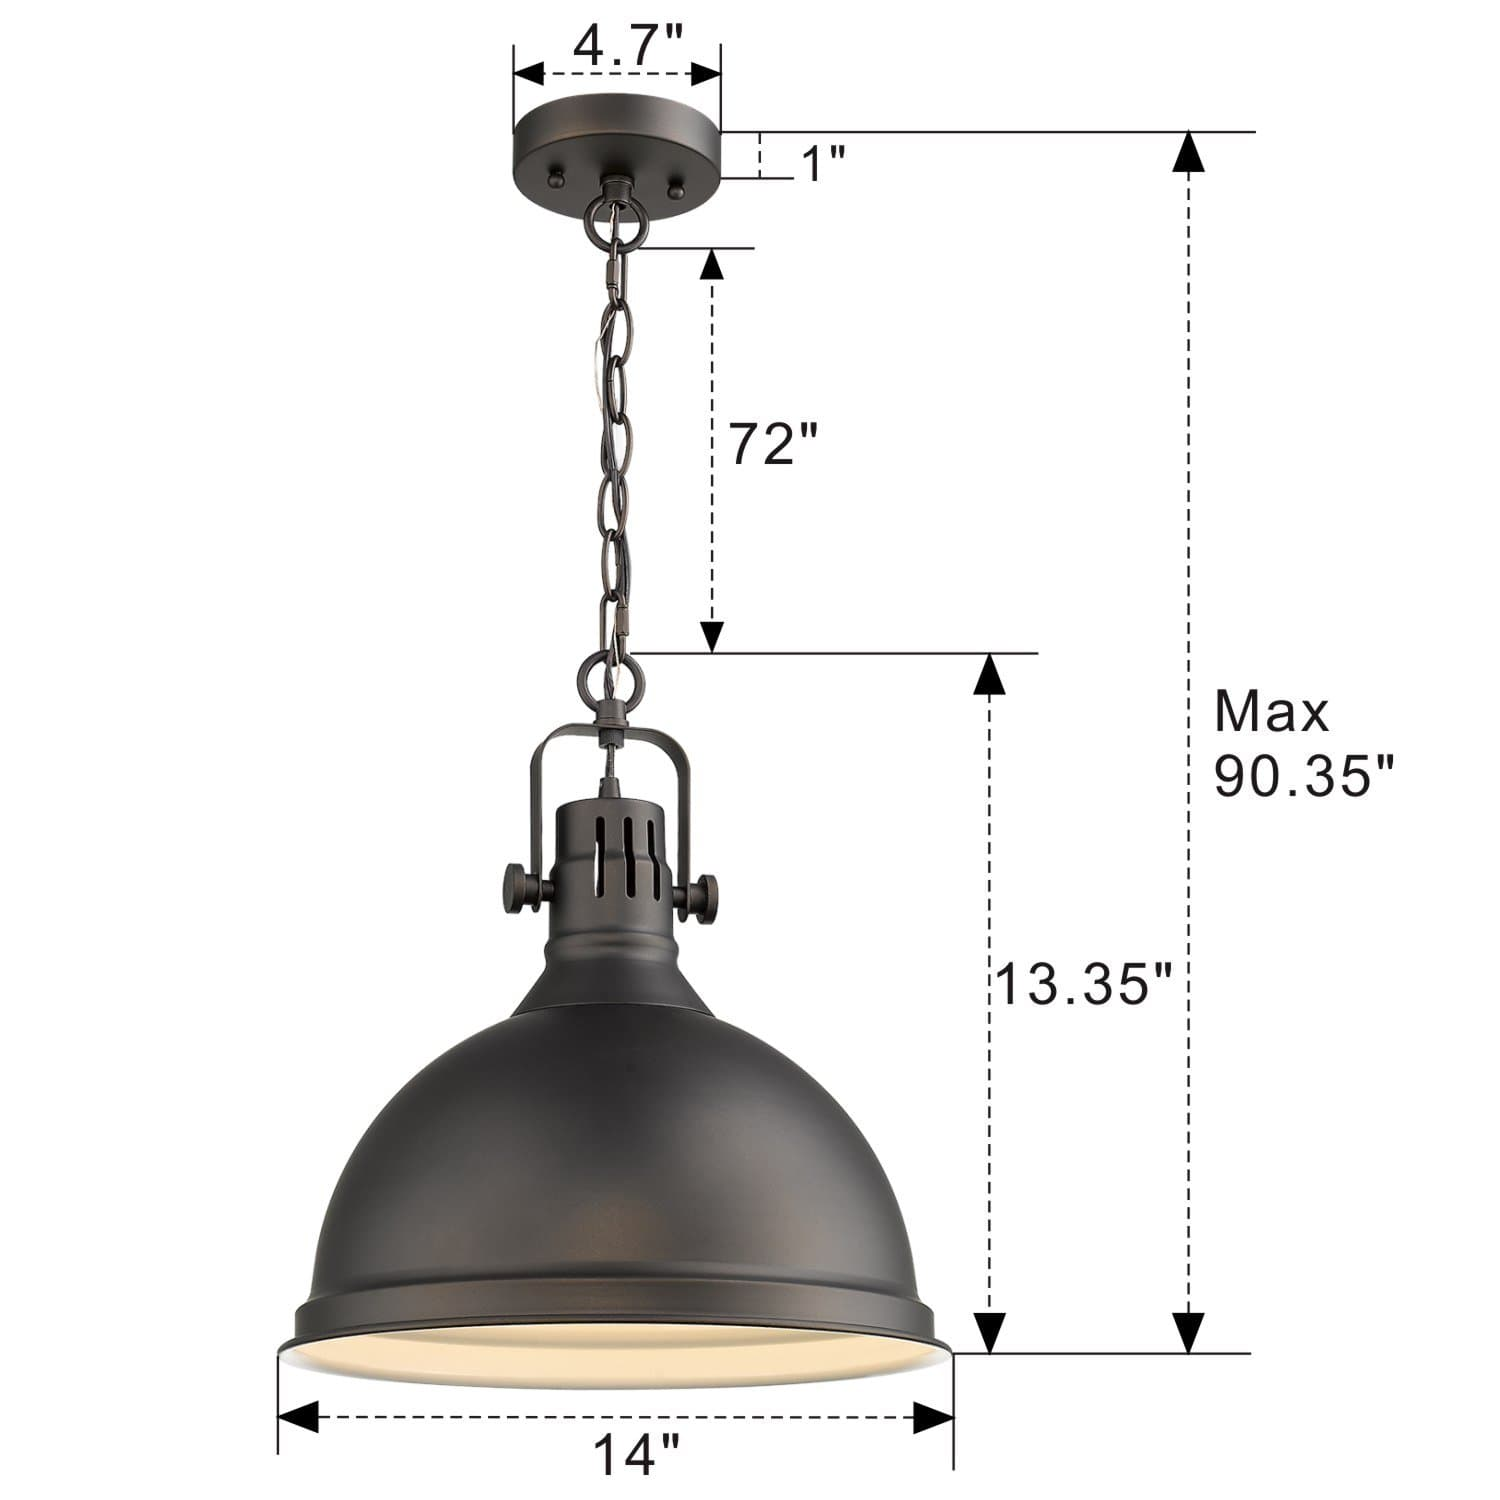 Emliviar 14 Inch Farmhouse Ceiling Pendant Light Vintage Metal Hanging Light With Dome Shade Oil Rubbed Bronze Finish 4054l Orb Ltmate Com